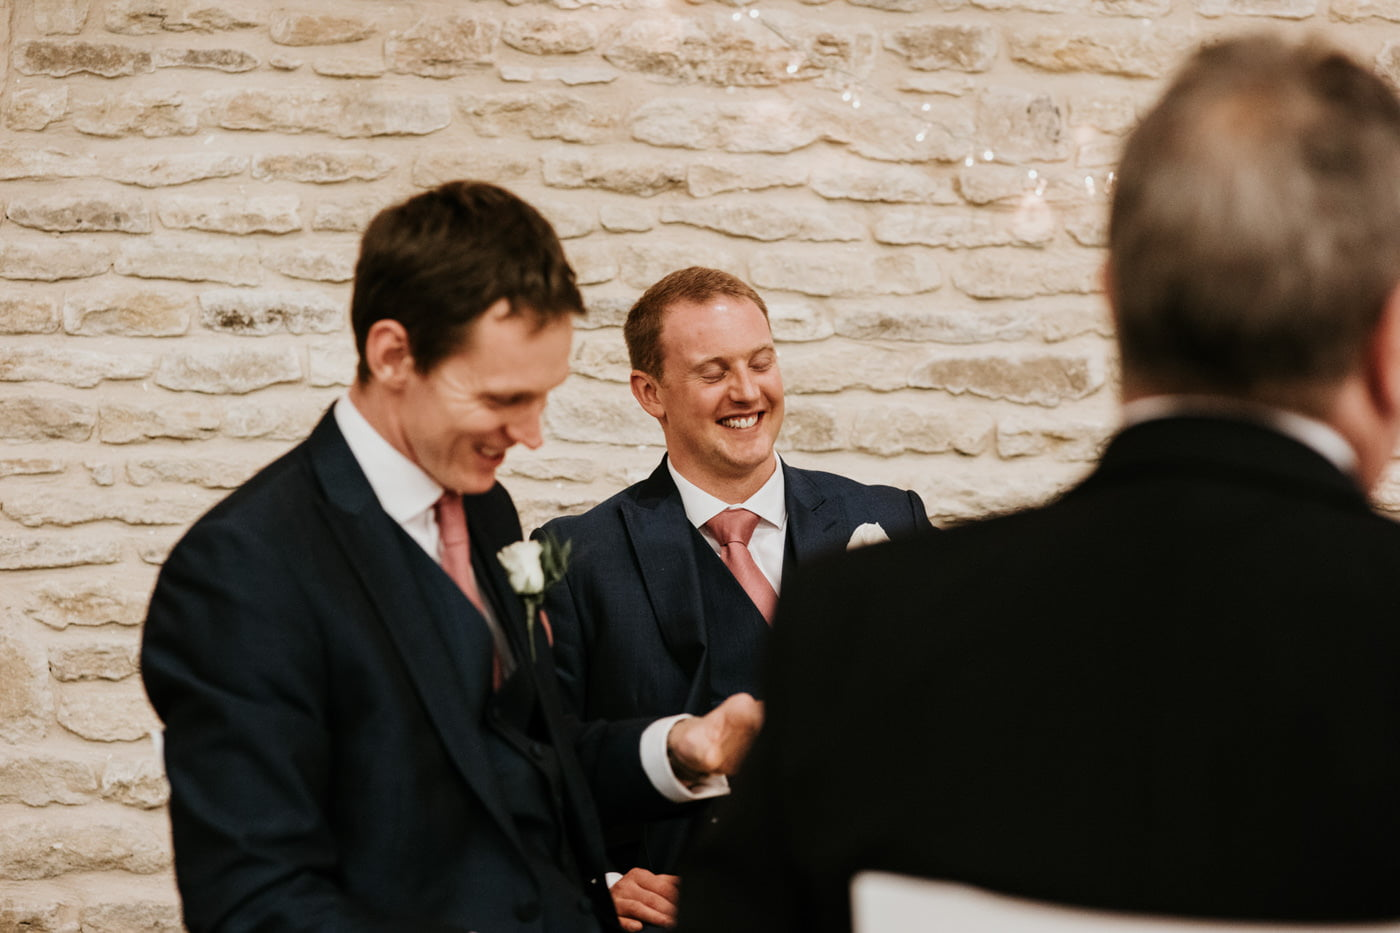 Ruth and Ben, Winkworth Farm, Wiltshire 2